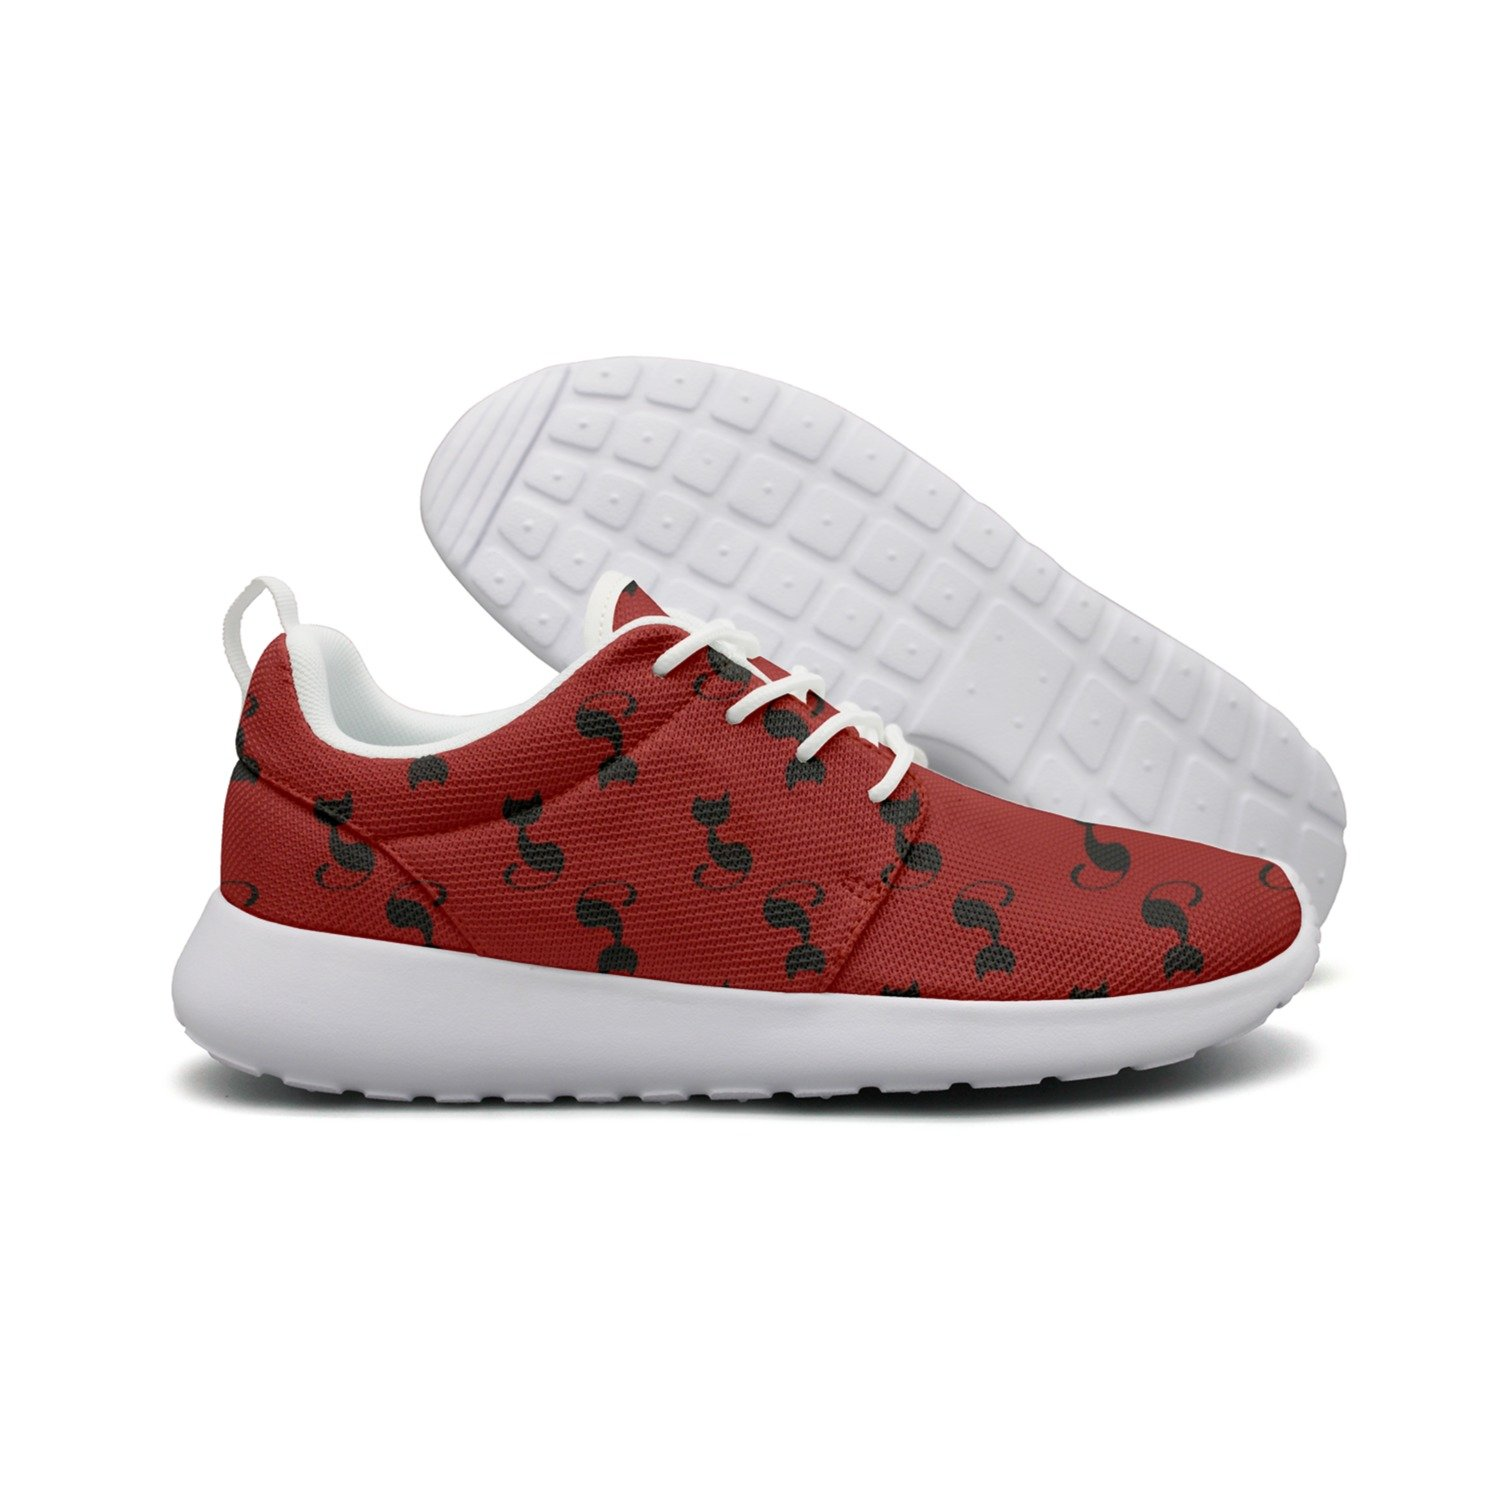 Hoohle Sports Cute Black Cat Red Background Womens Flex Roshe One Flex Womens Mesh Casual Shoes for Men B07DCHQ4GV Fashion Sneakers 0b8fef